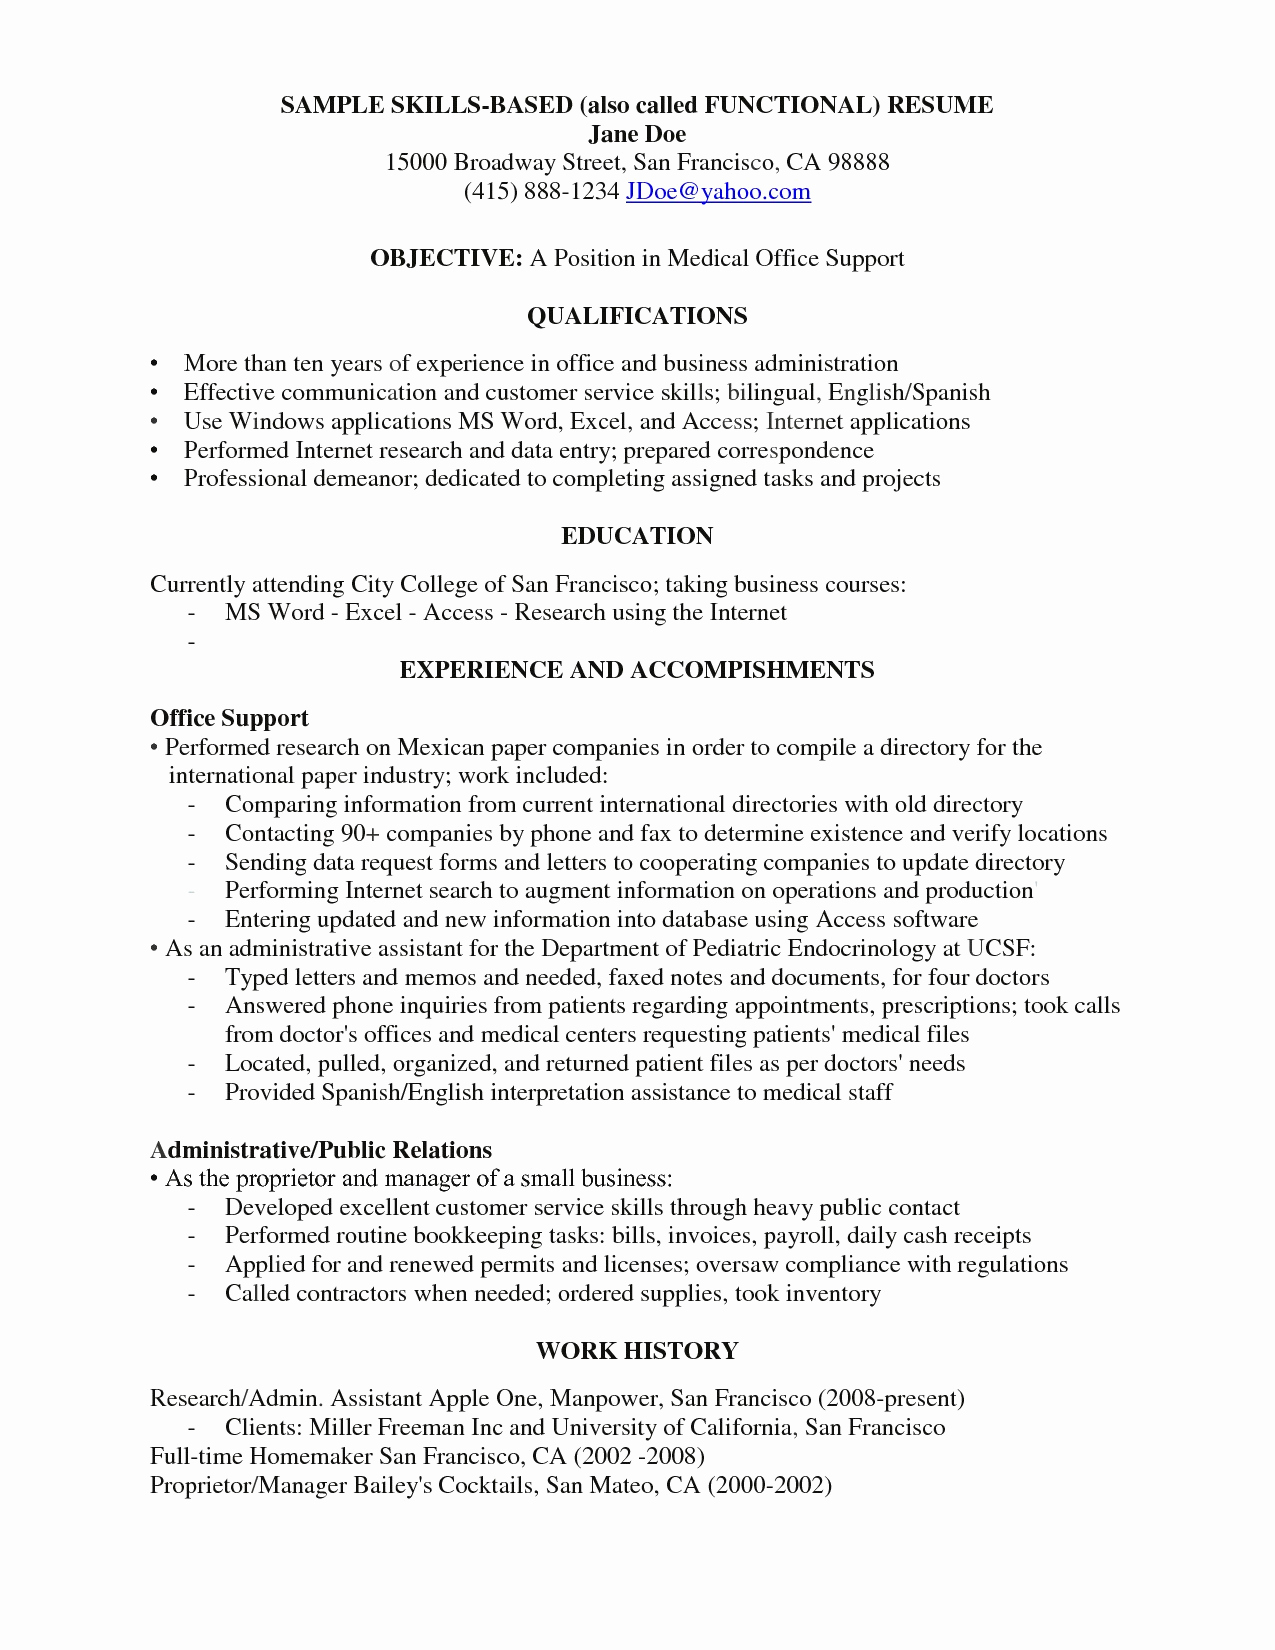 Mini Resume Template - Point Administrator Resume Awesome Examples Resumes Ecologist